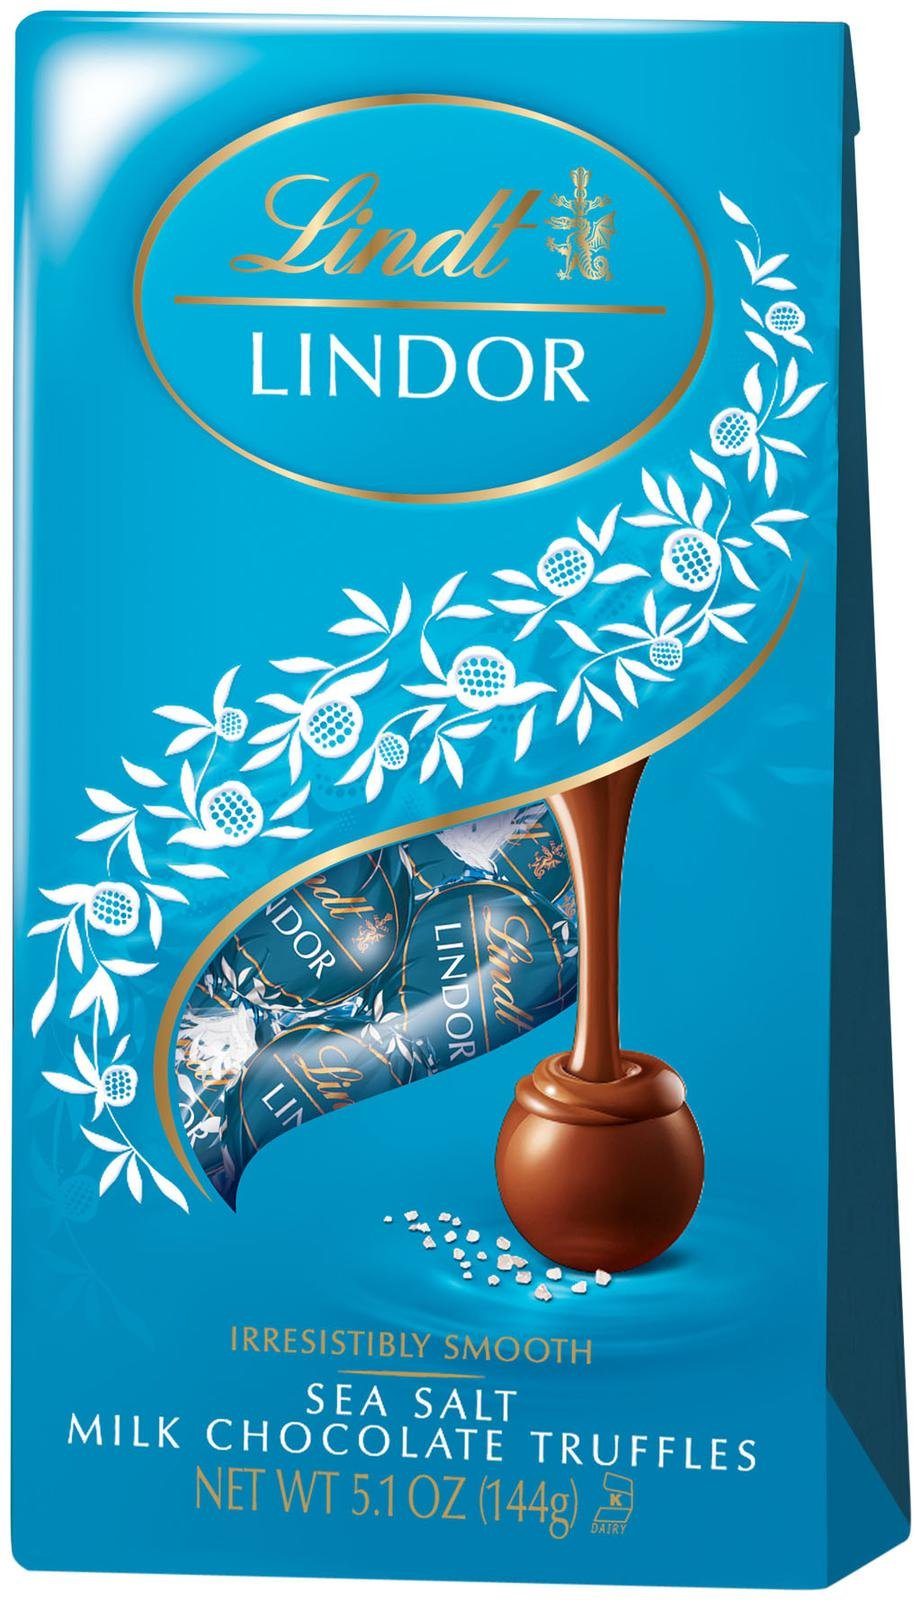 Lindt Lindor Sea Salt Milk Chocolate Truffles 51oz Bag Single Dark Gift